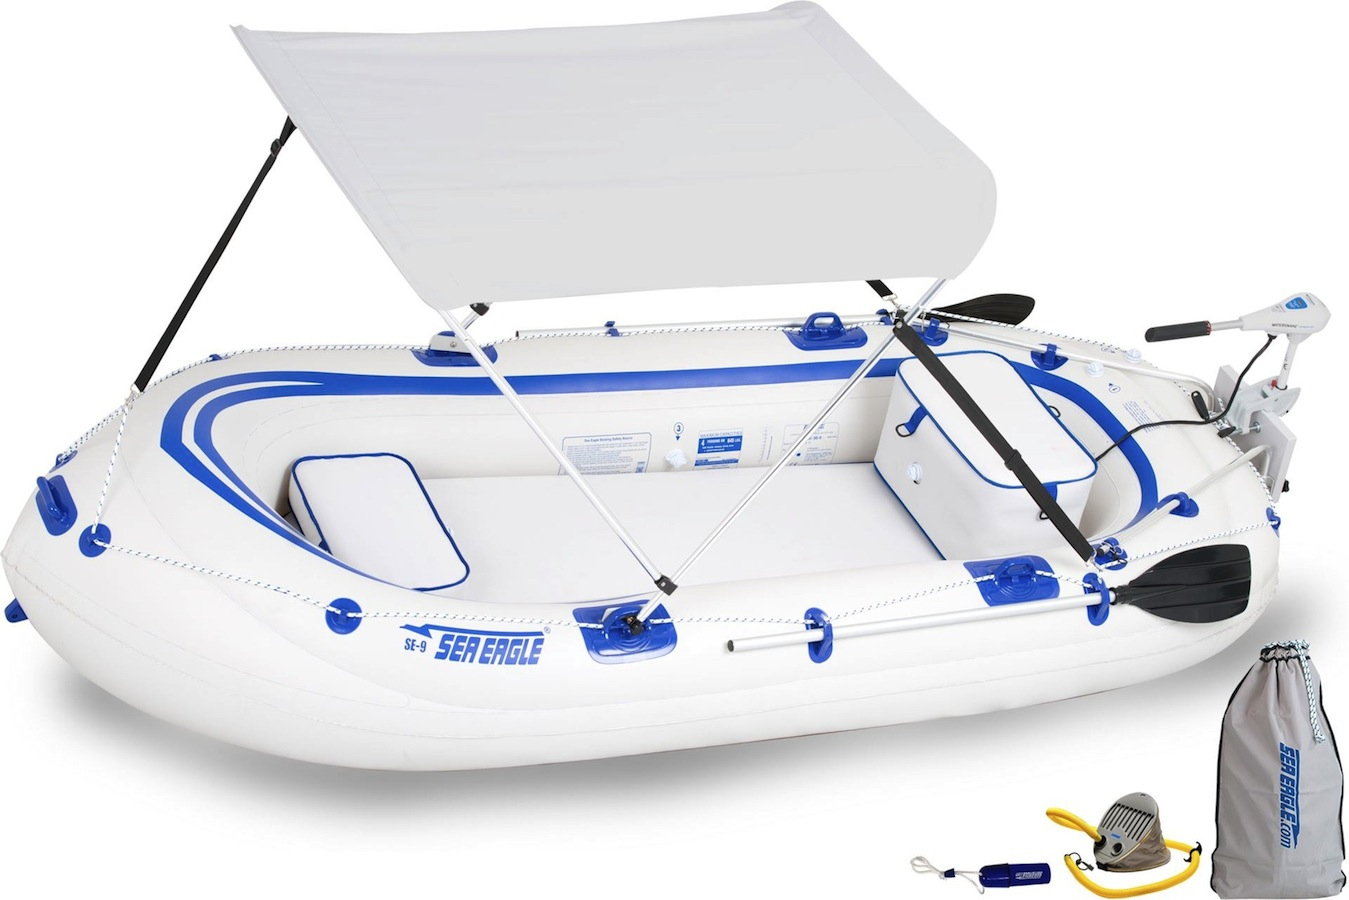 Details about Sea Eagle SE9 Watersnake Motor Canopy Package Inflatable  Runabout Boat Tender